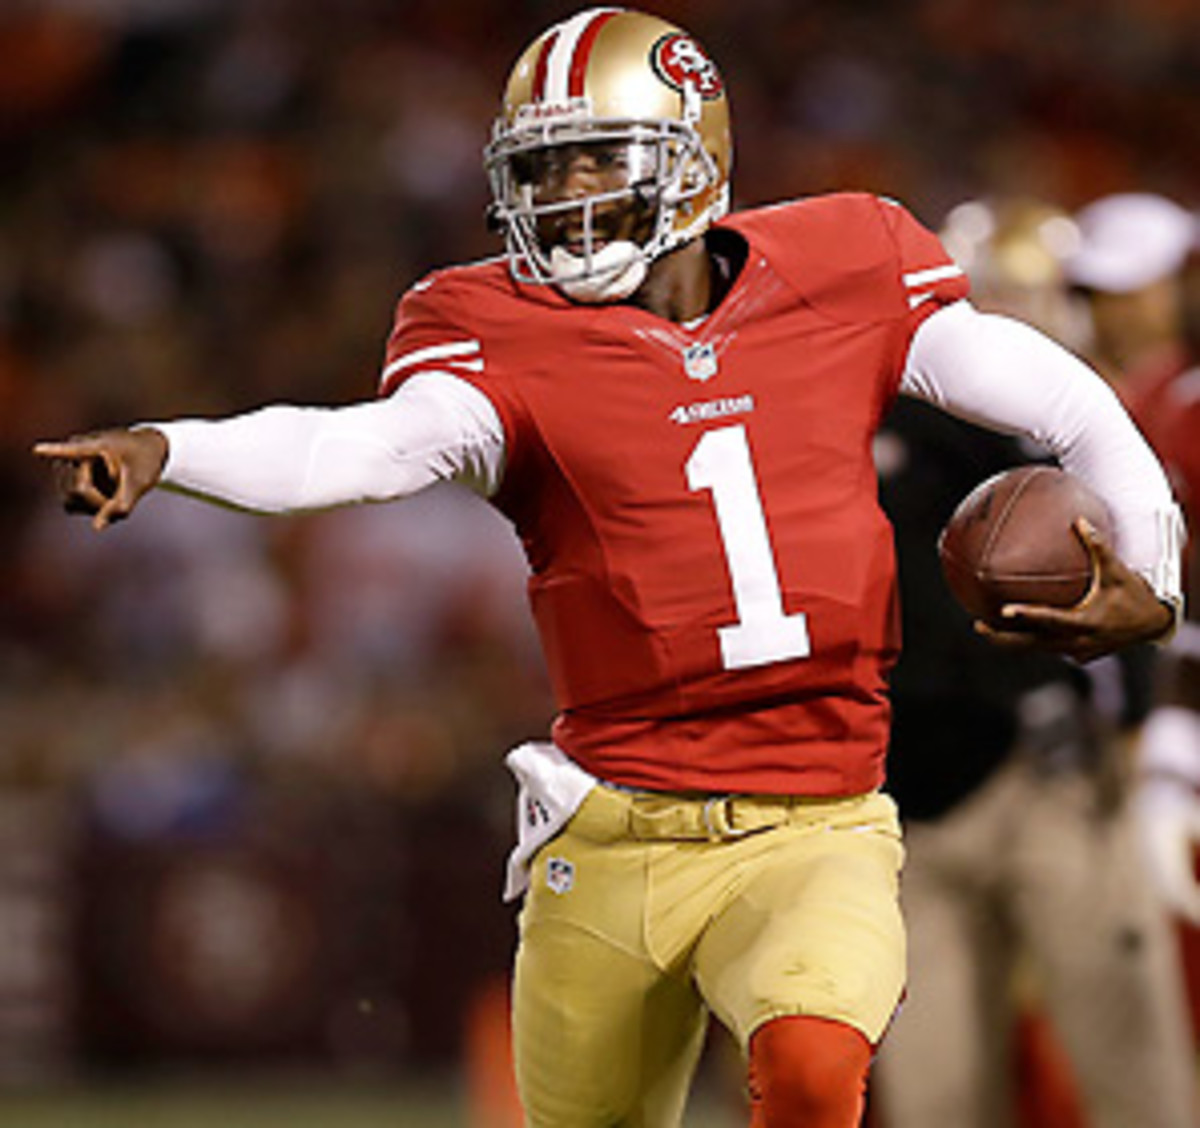 Josh Johnson was signed by the 49ers in March, but released in August, after spending four years with the Buccaneers as a fifth-round pick.